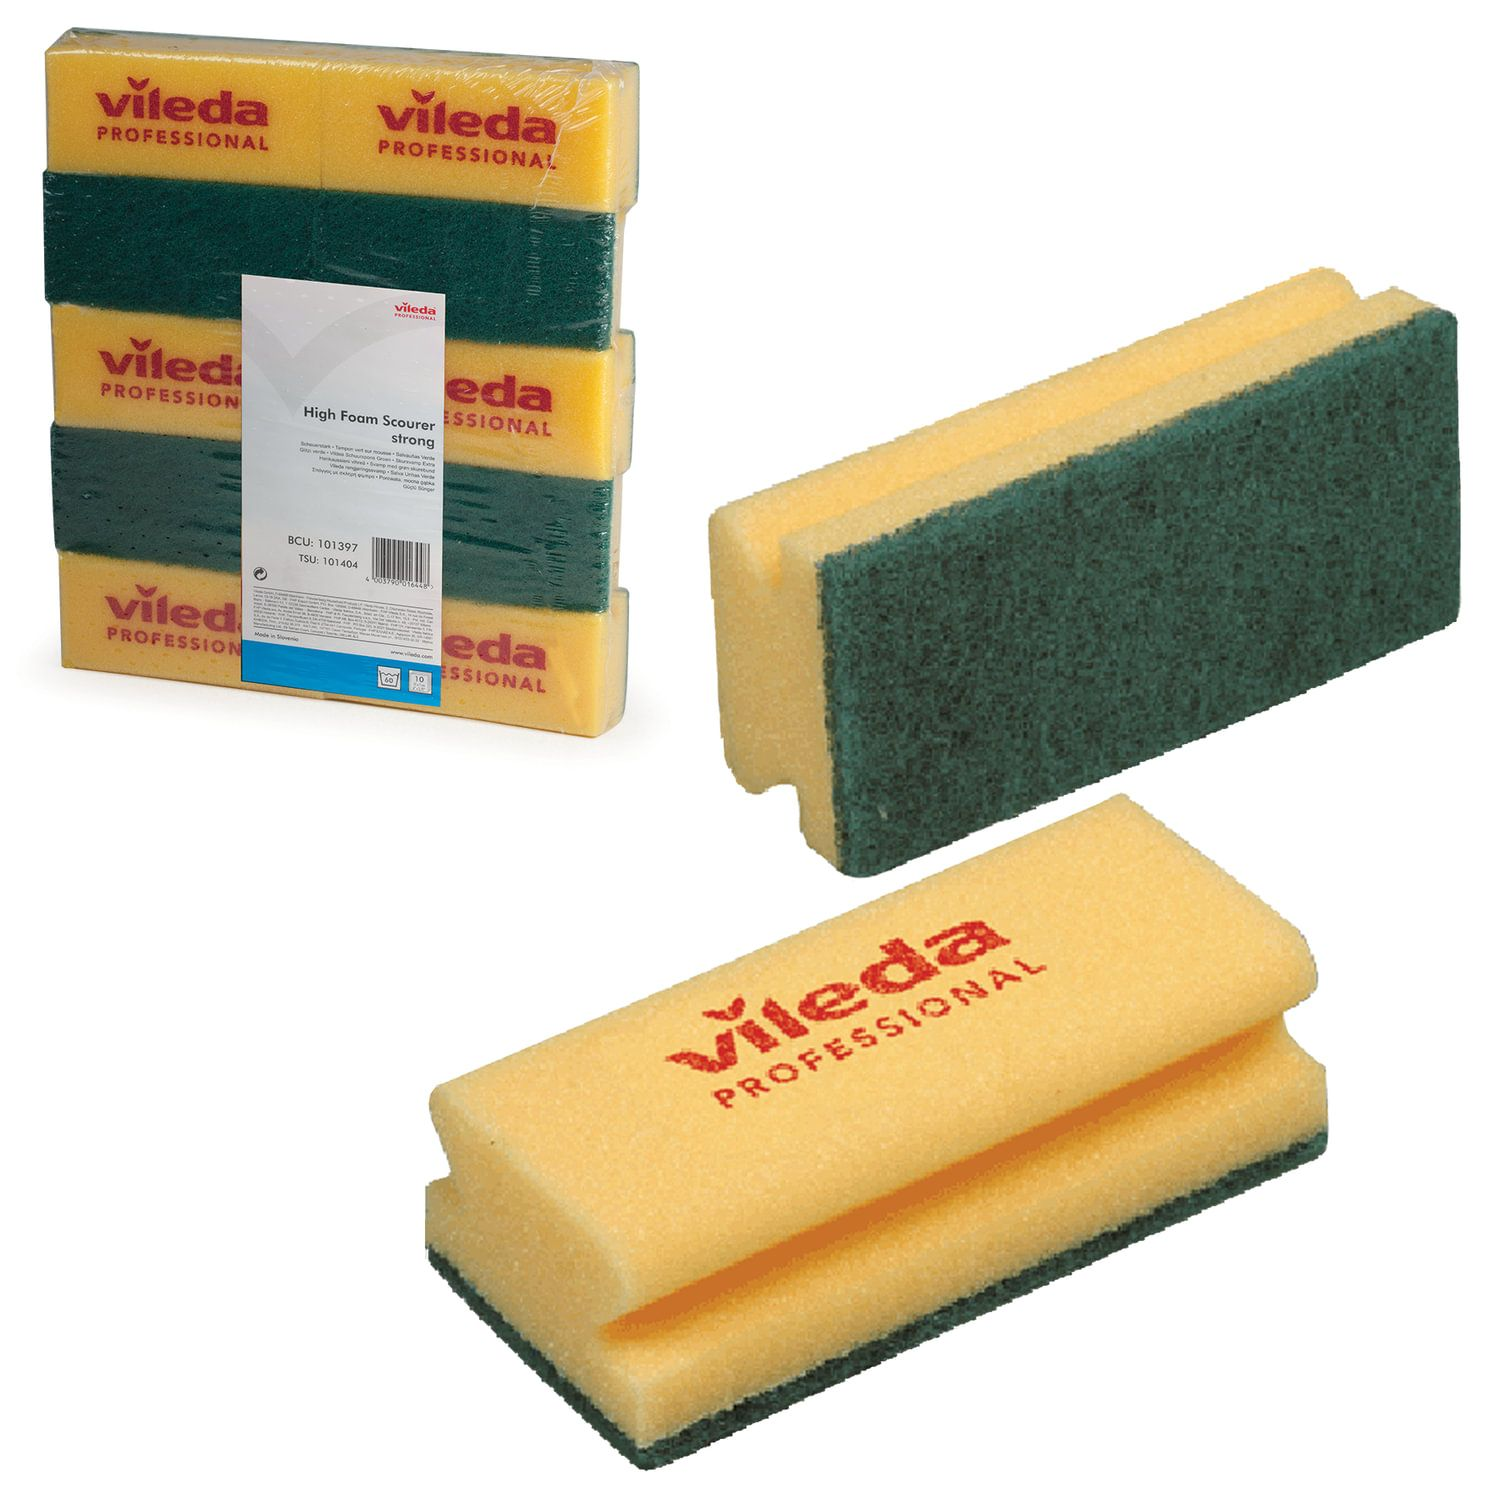 VILEDA / Sponges for all surfaces yellow, green abrasive, 7x15 cm, set of 10 pcs.